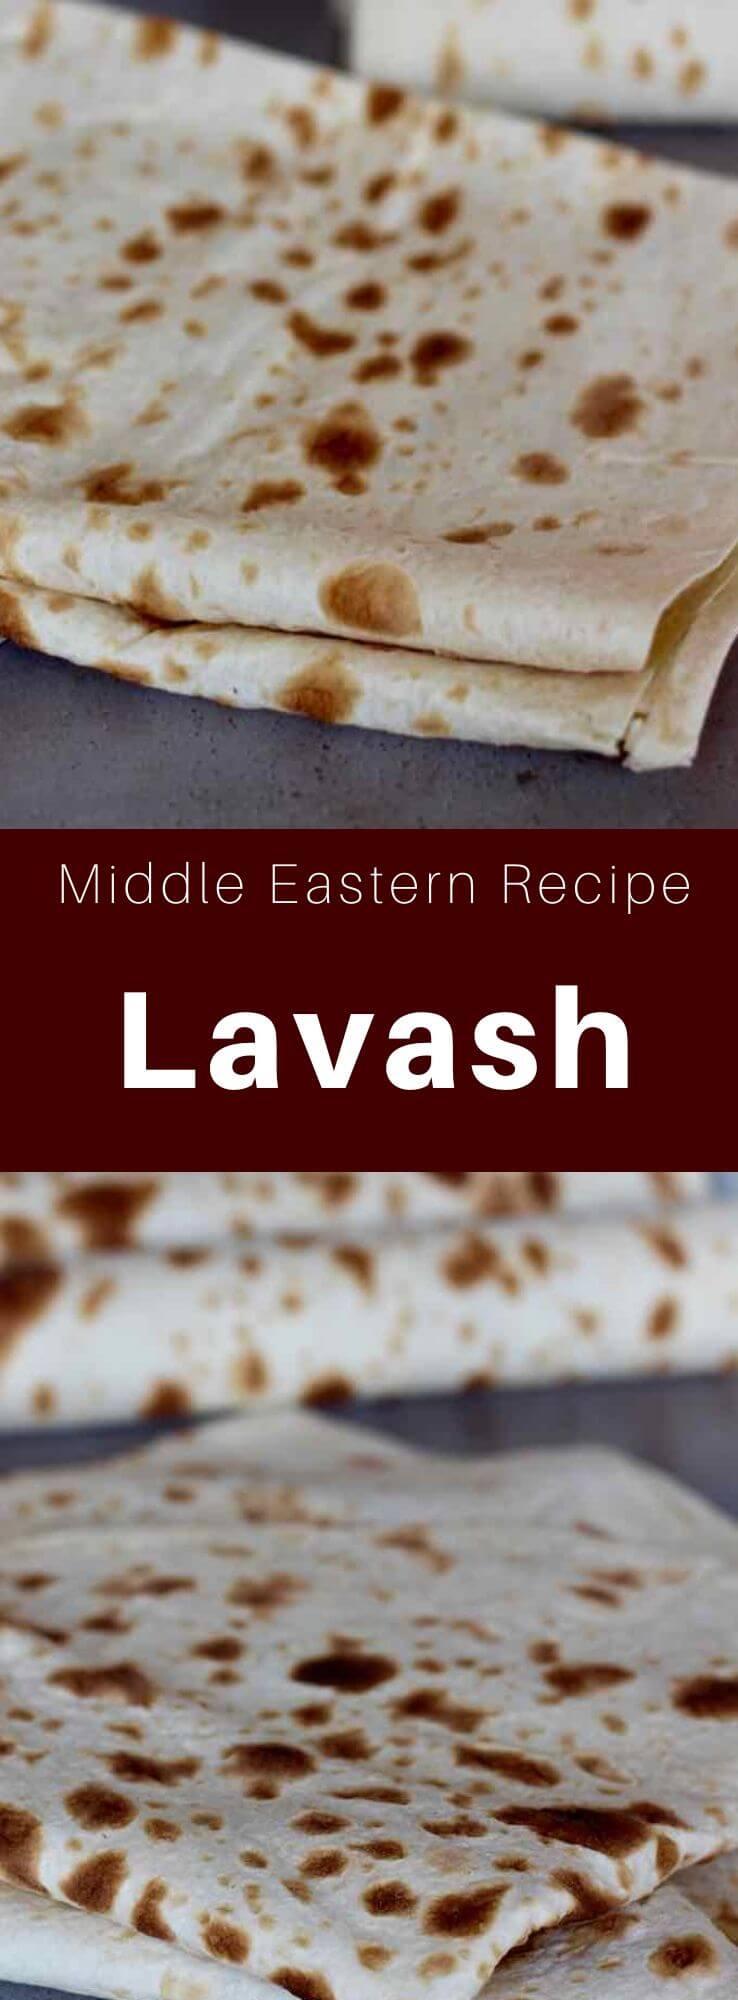 Lavash is an unleavened flatbread common to Armenia and most of the Middle East, Transcaucasia, and Western Asia regions. #MiddleEast #MiddleEastern #Armenia #ArmenianCuisine #ArmenianRecipe #WorldCuisine #196flavors